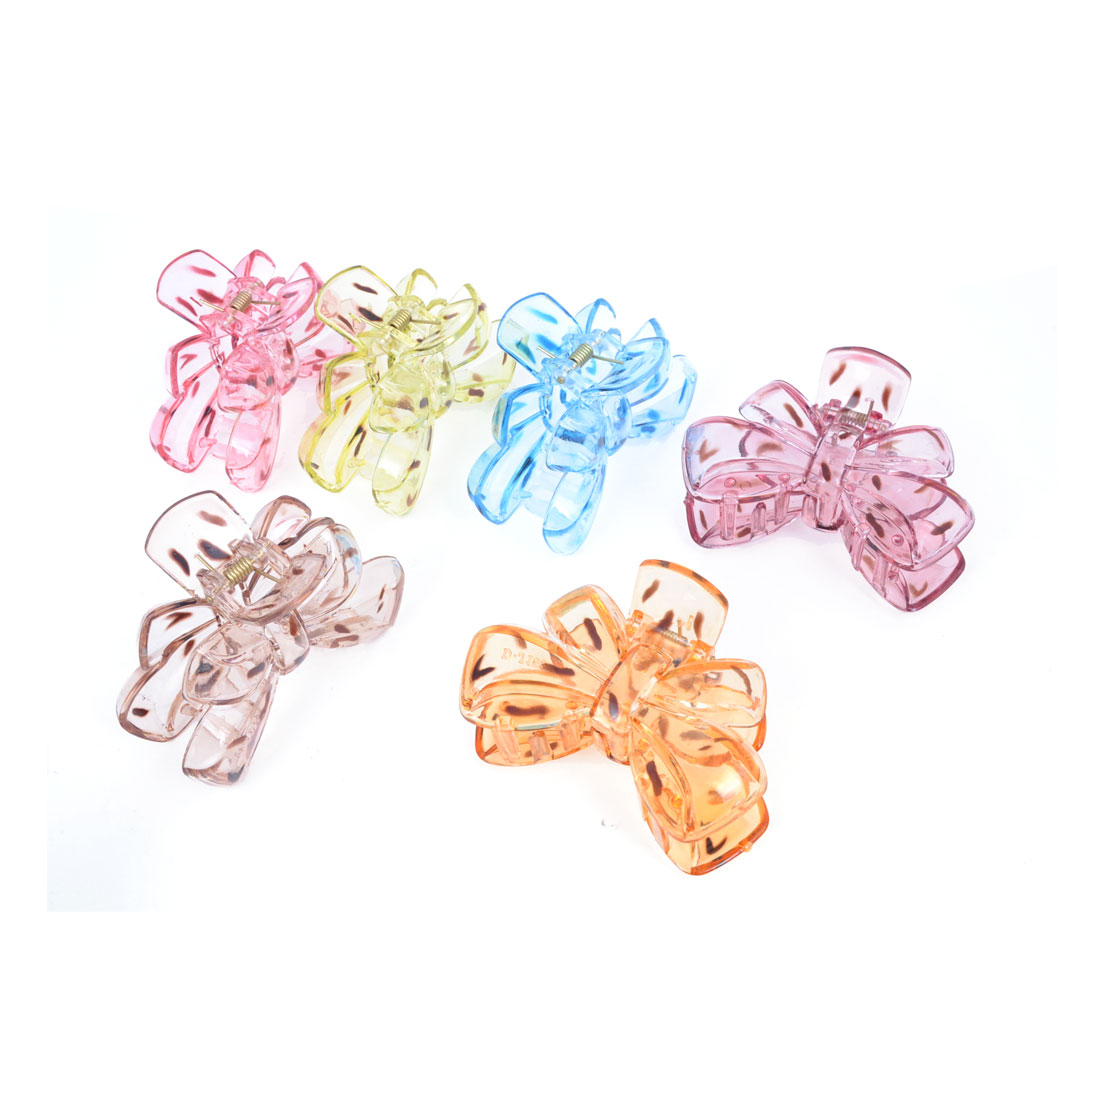 6 Pcs Bowknot Shaped Adornment 8 Teeth Colorful Barrette Hair Claw Clamp Hairclip for Women